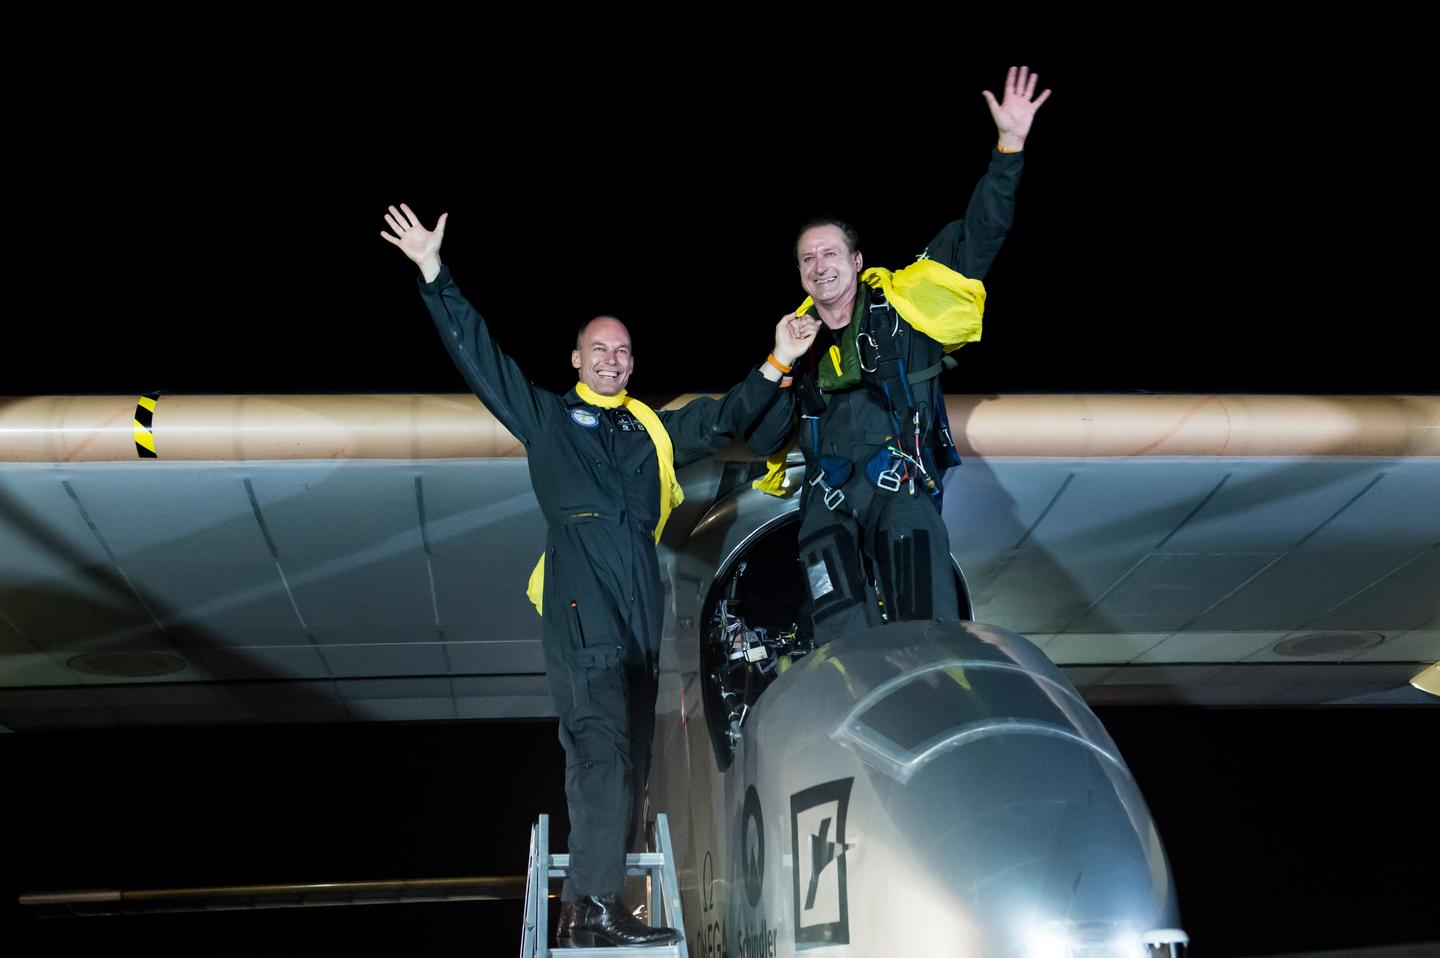 André Borschberg and Bertrand Piccard celebrate the completion of the Solar Impulse's Mission Across America at New York's JFK International Airport